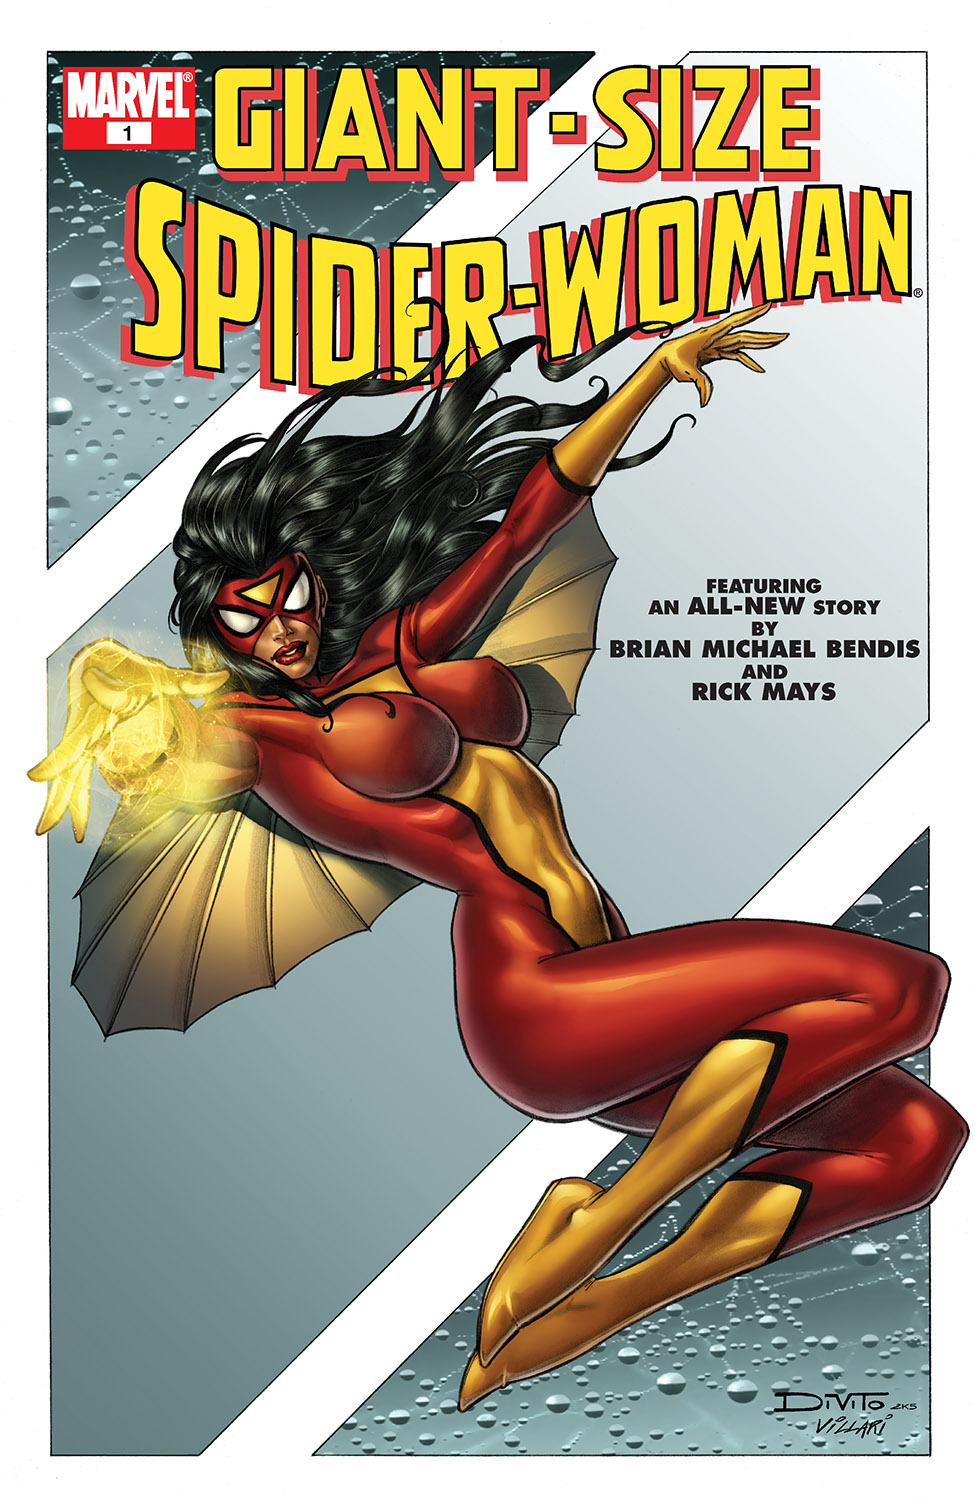 Giant Size Spider-Woman (2005) One Shot - Used